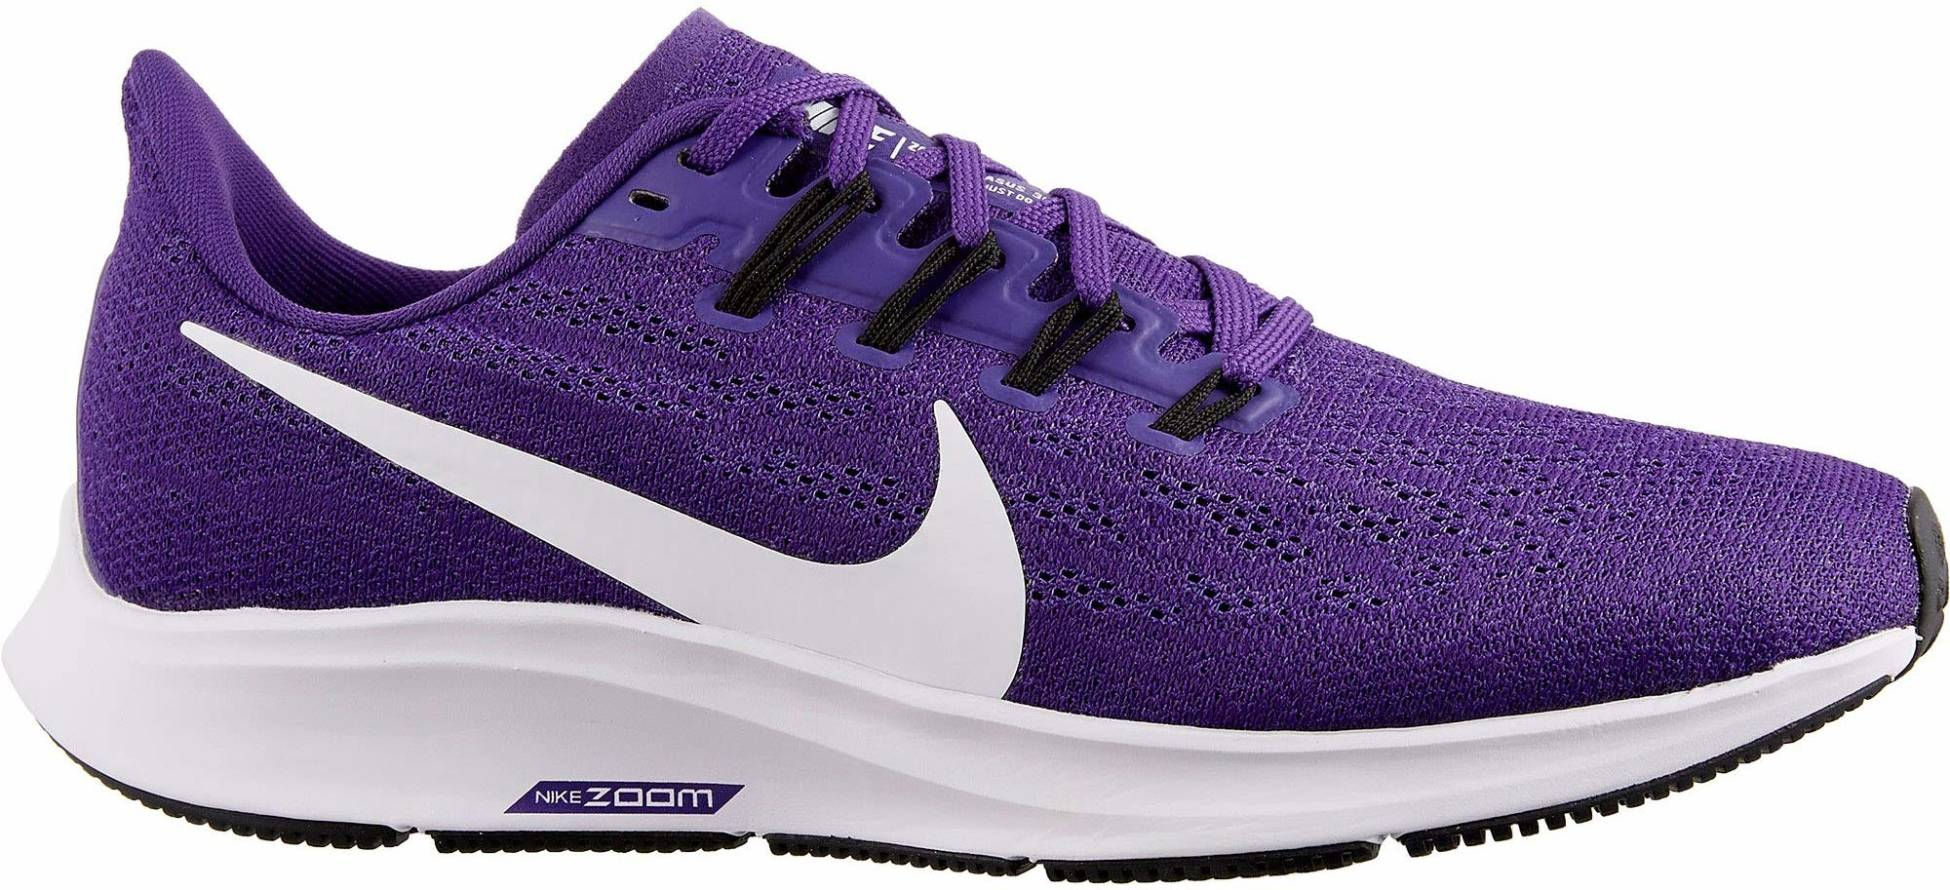 Save 46% on Purple Running Shoes (80